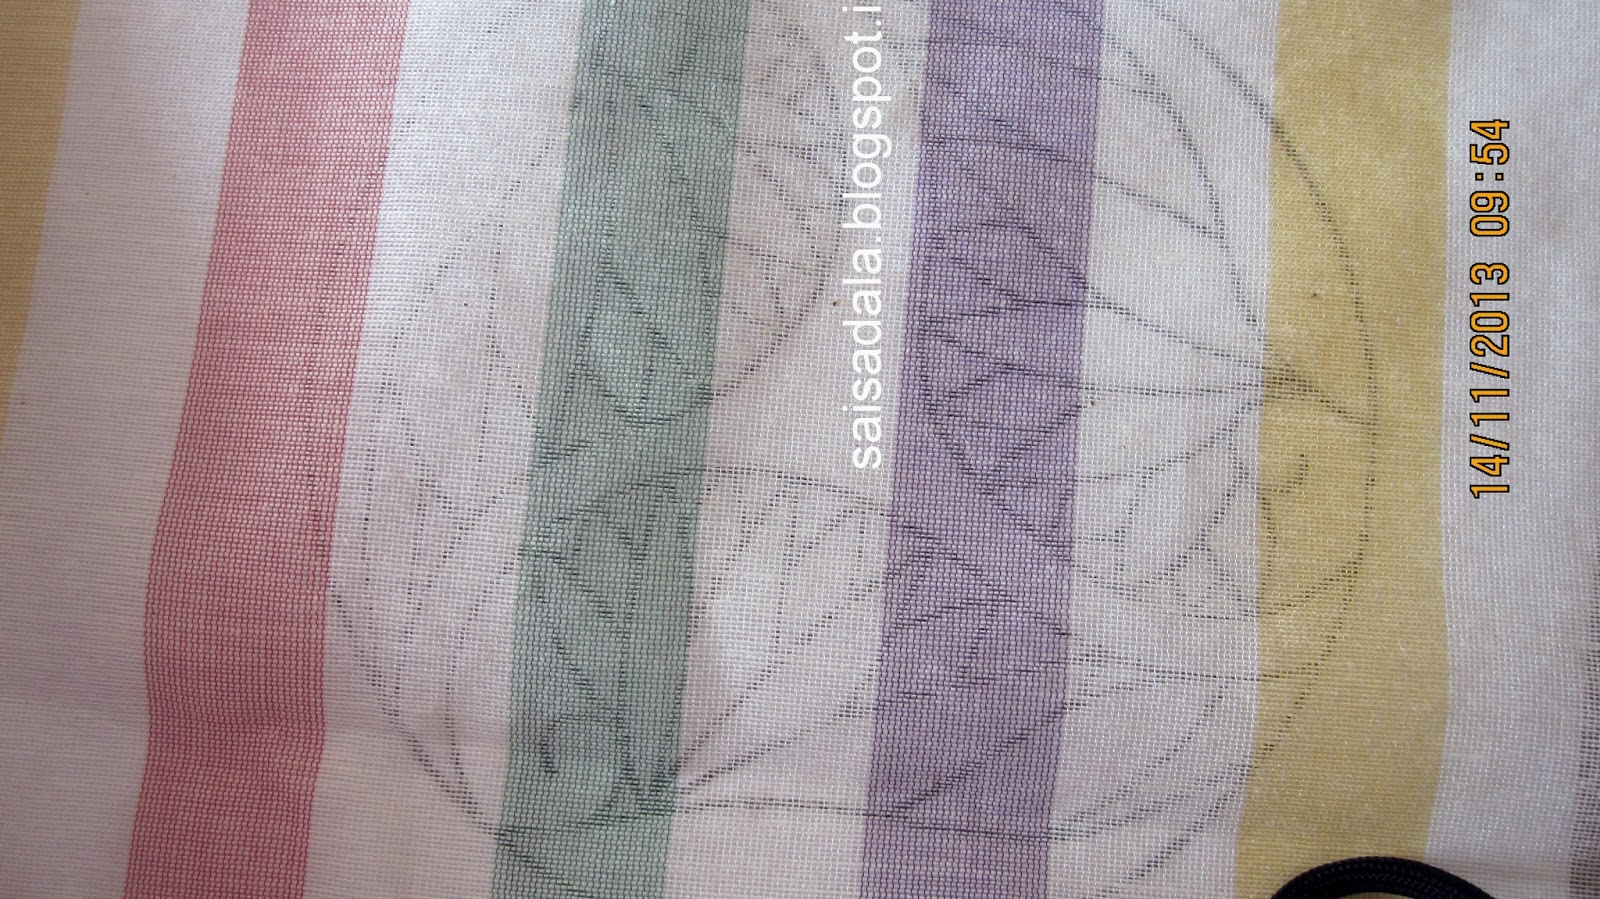 Sadalas Embroidery Tutorial Transferring The Design To Fabric By